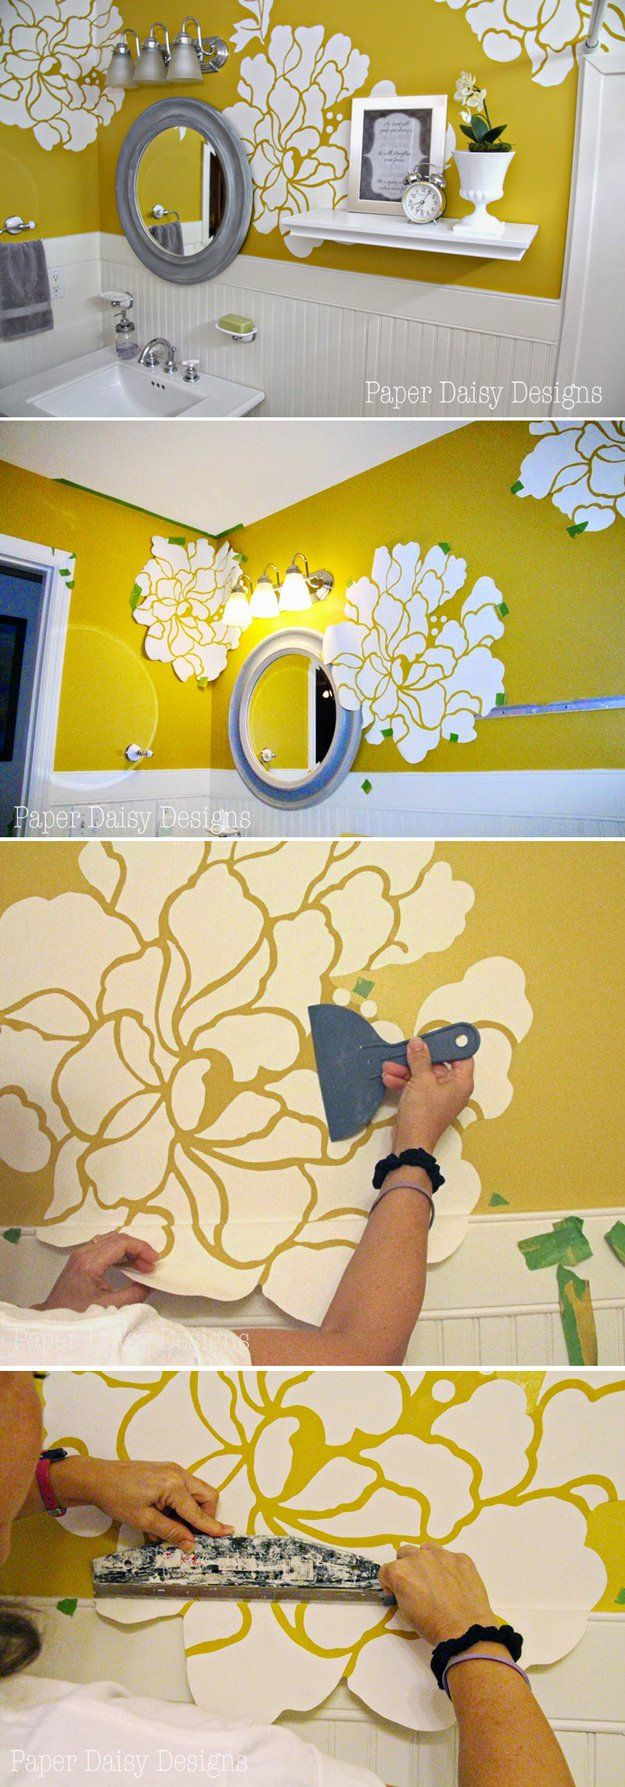 8601 best DIY images on Pinterest | Craft, Decorating ideas and ...